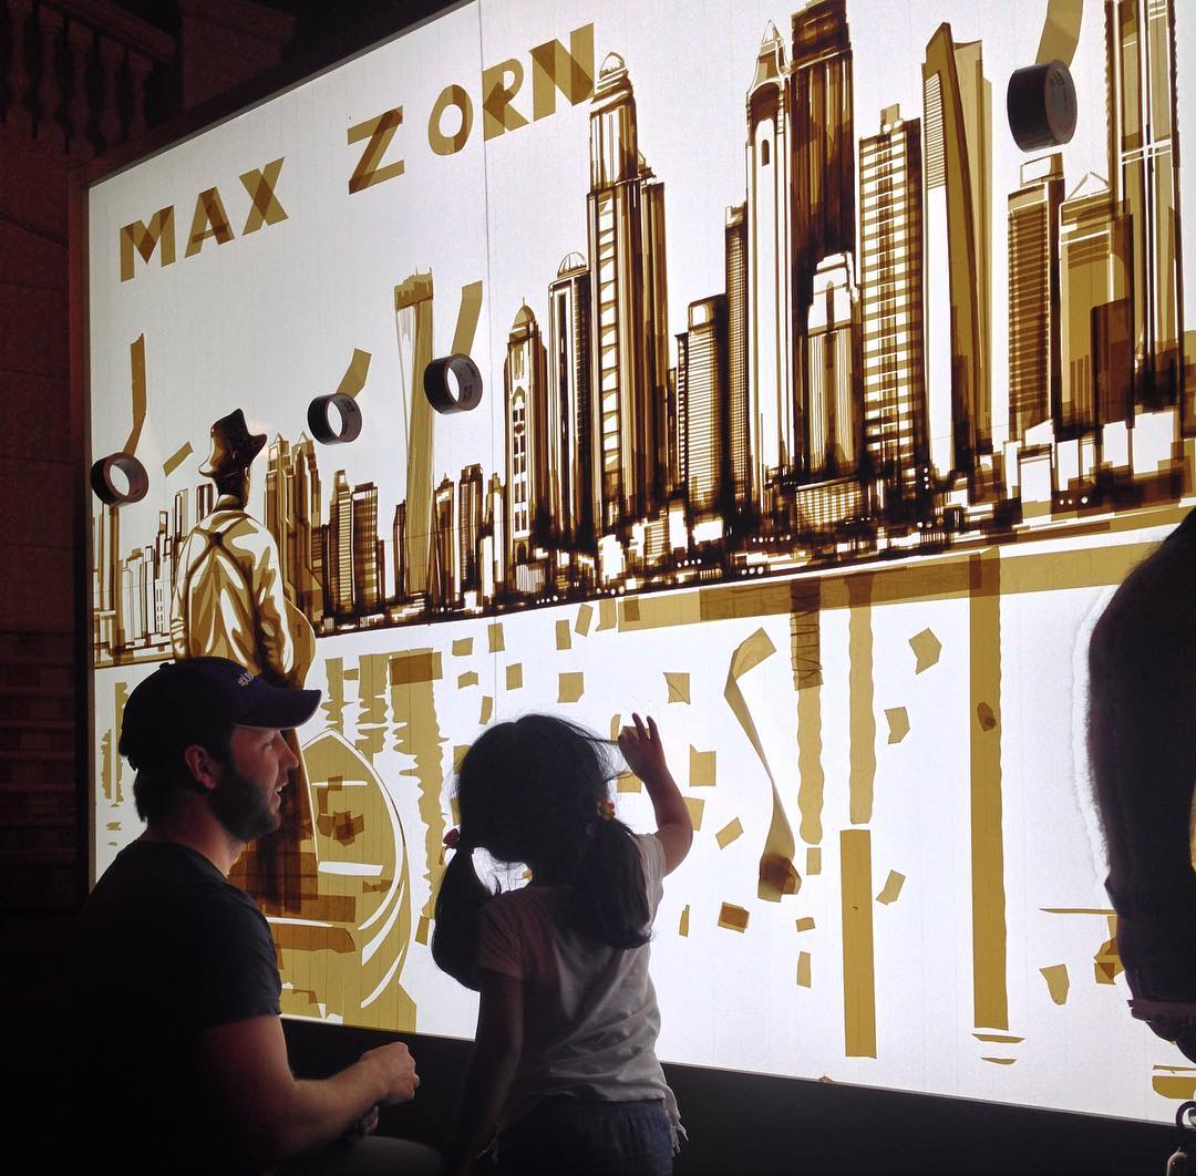 Max Zorn, tape art, Dubai, art in Dubai, tape art, UAE art